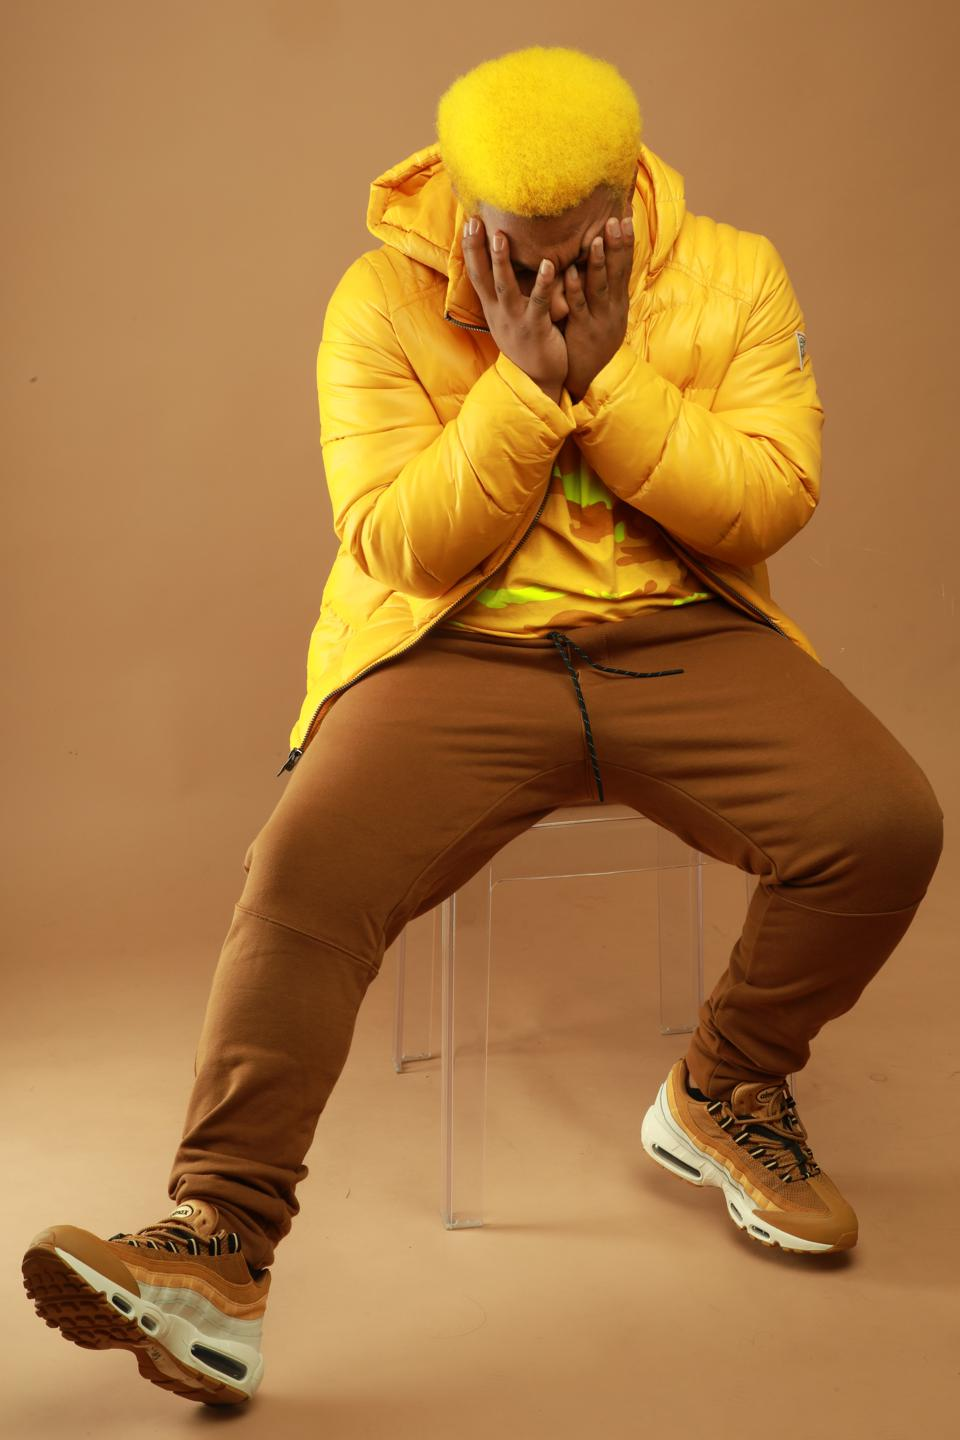 YelloPain in a recent photo shoot.